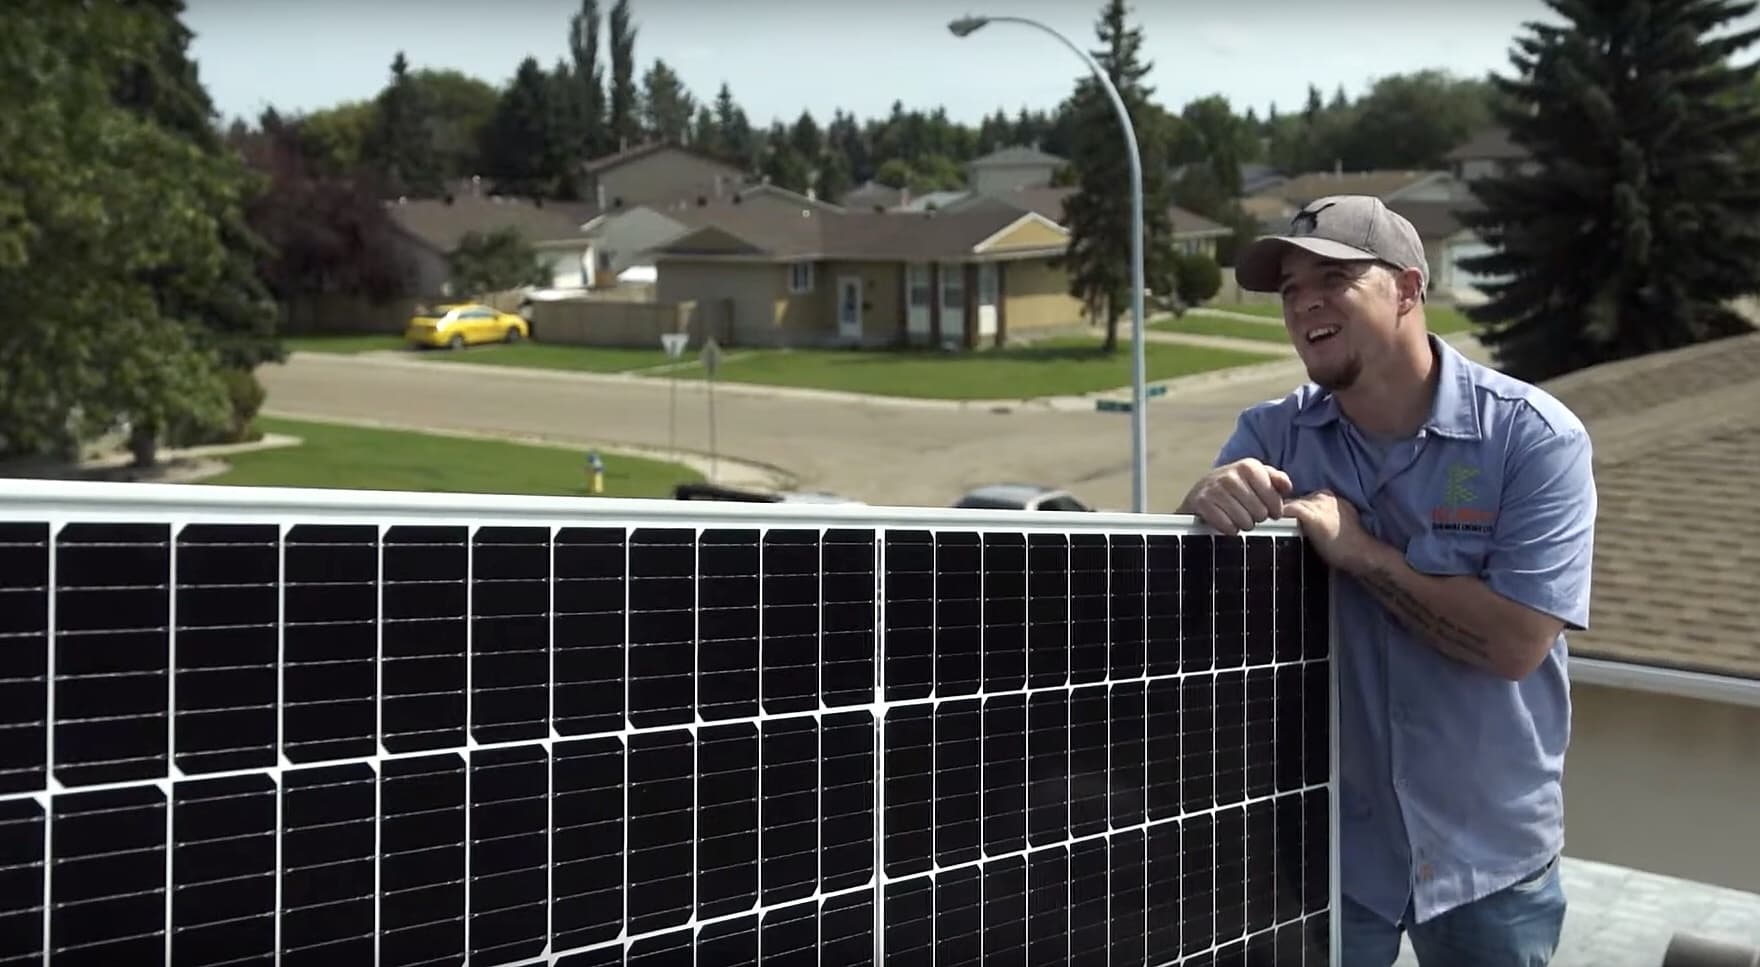 Dustin Taylor Kube Renewable Energy Alberta solar